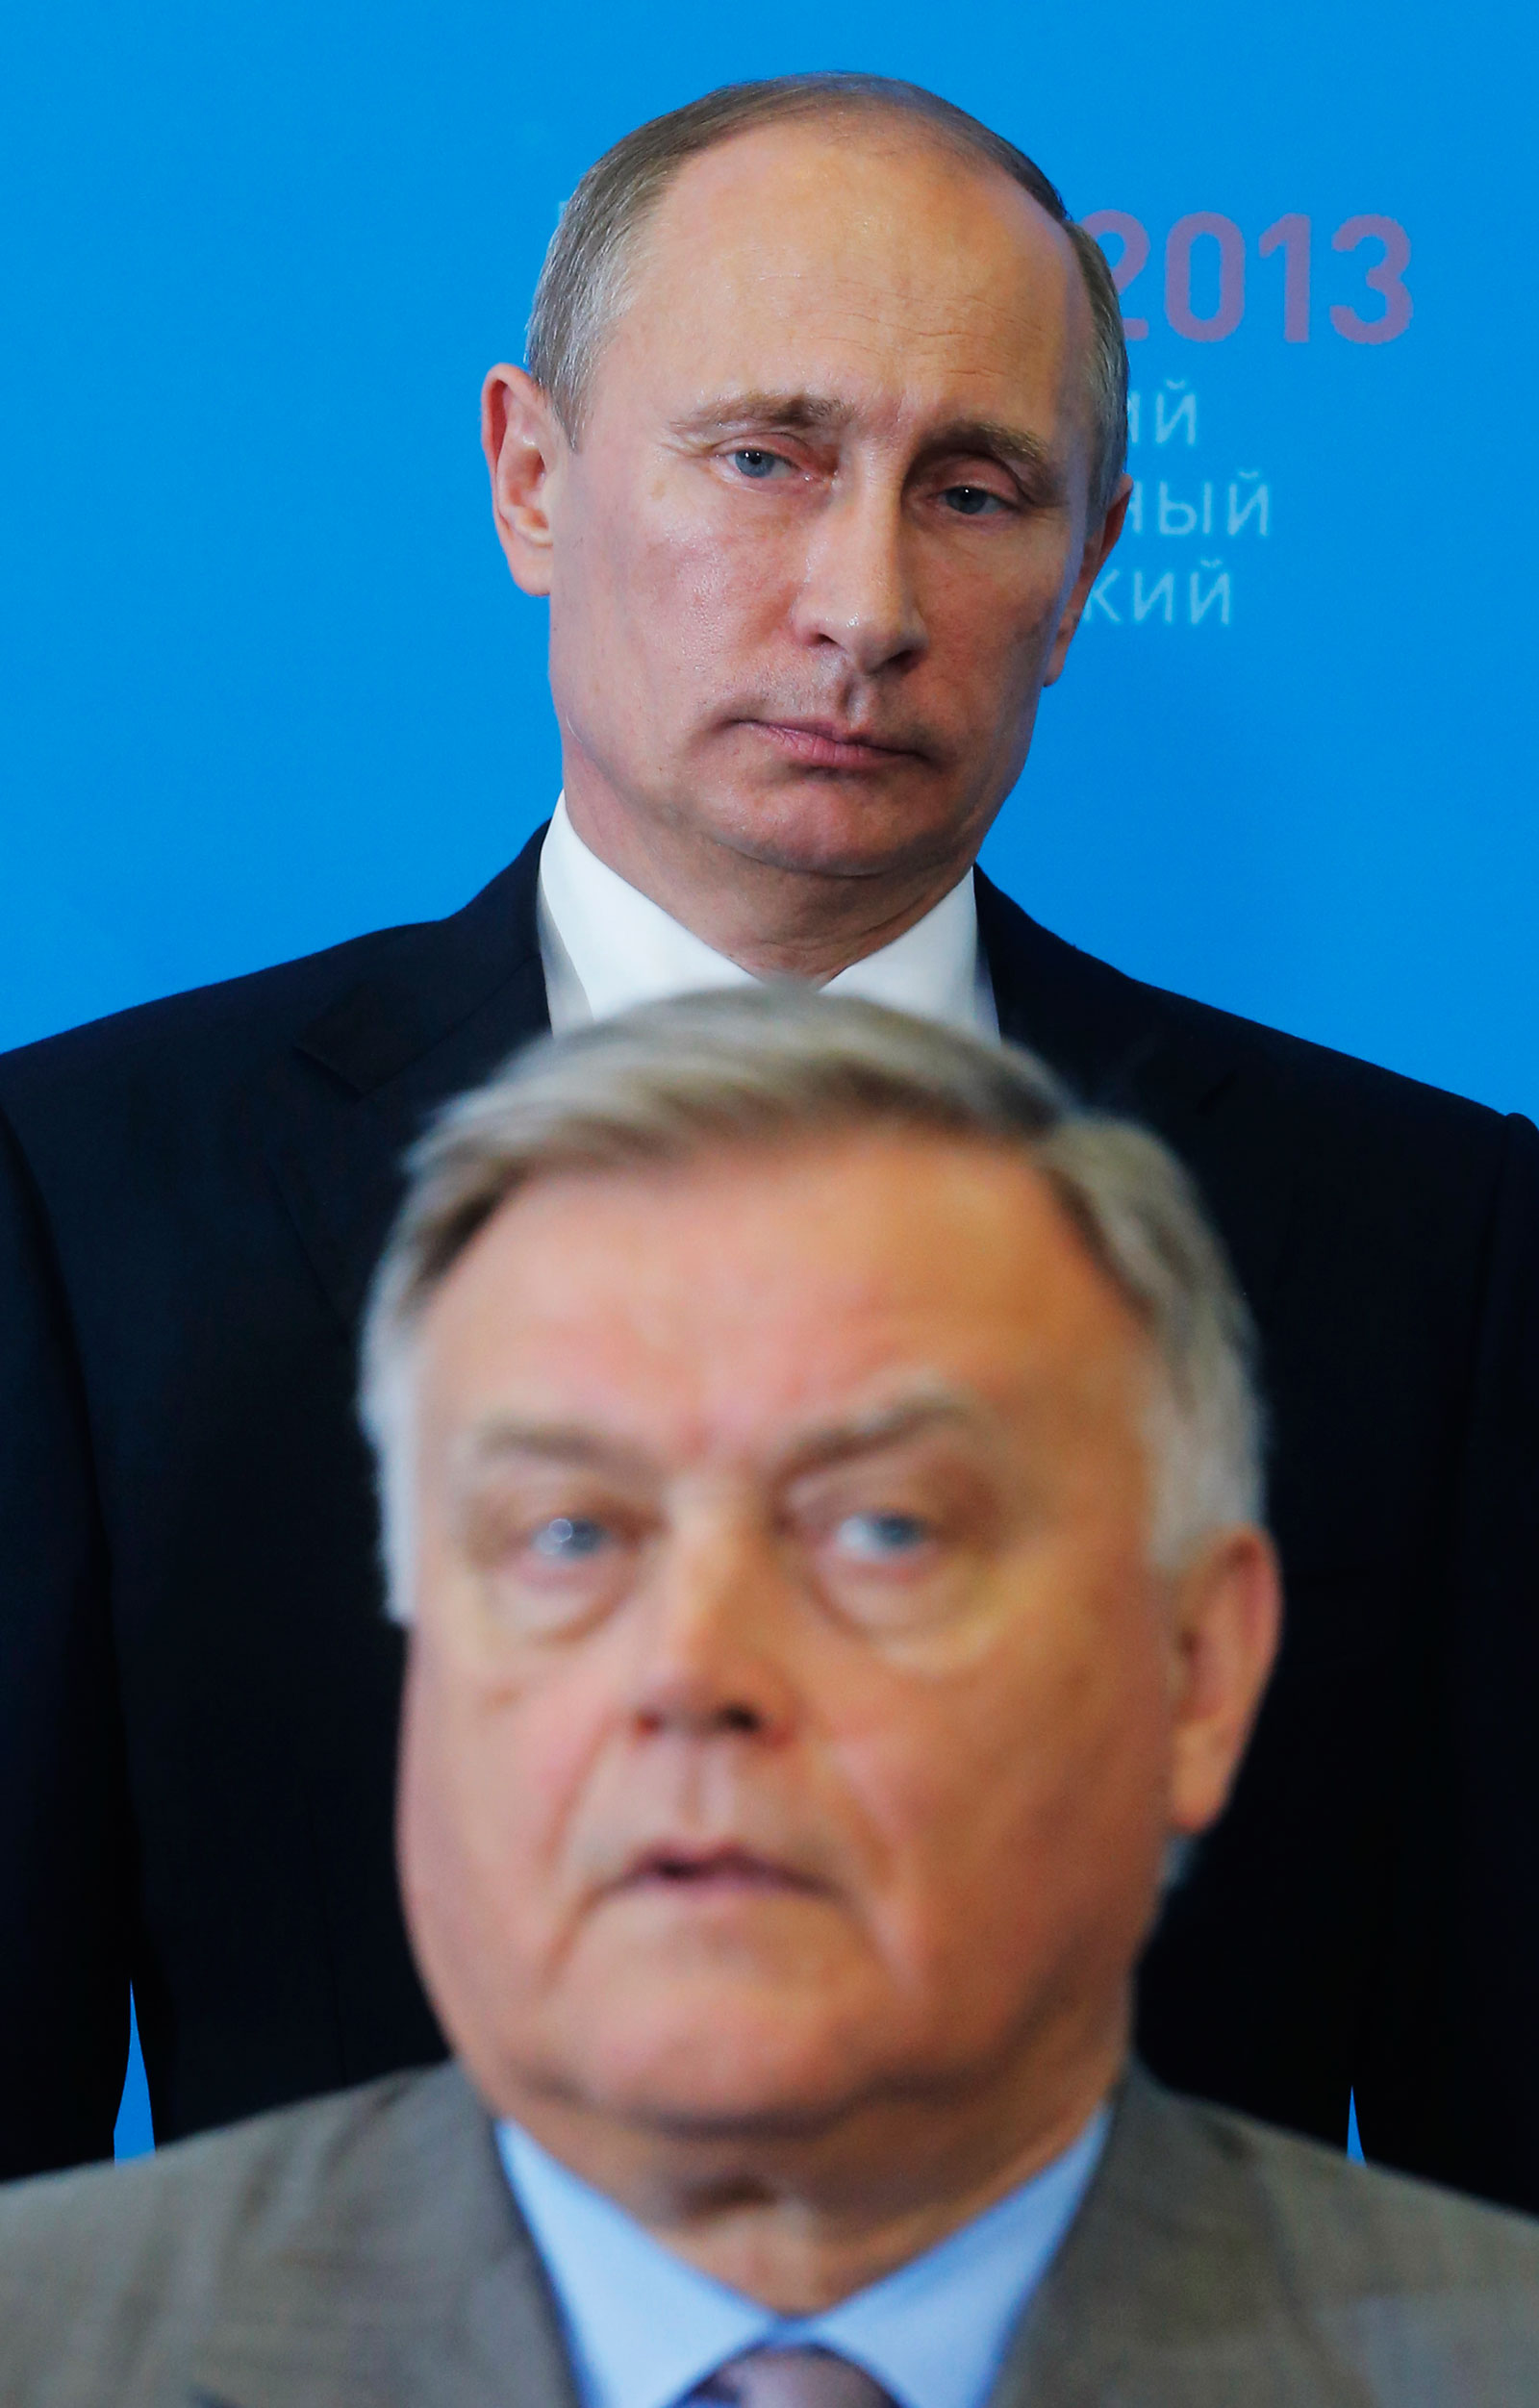 Russian President Vladimir Putin and former Russian Railways chief Vladimir Yakunin at the St. Petersburg International Economic Forum, Russia, June 20, 2013